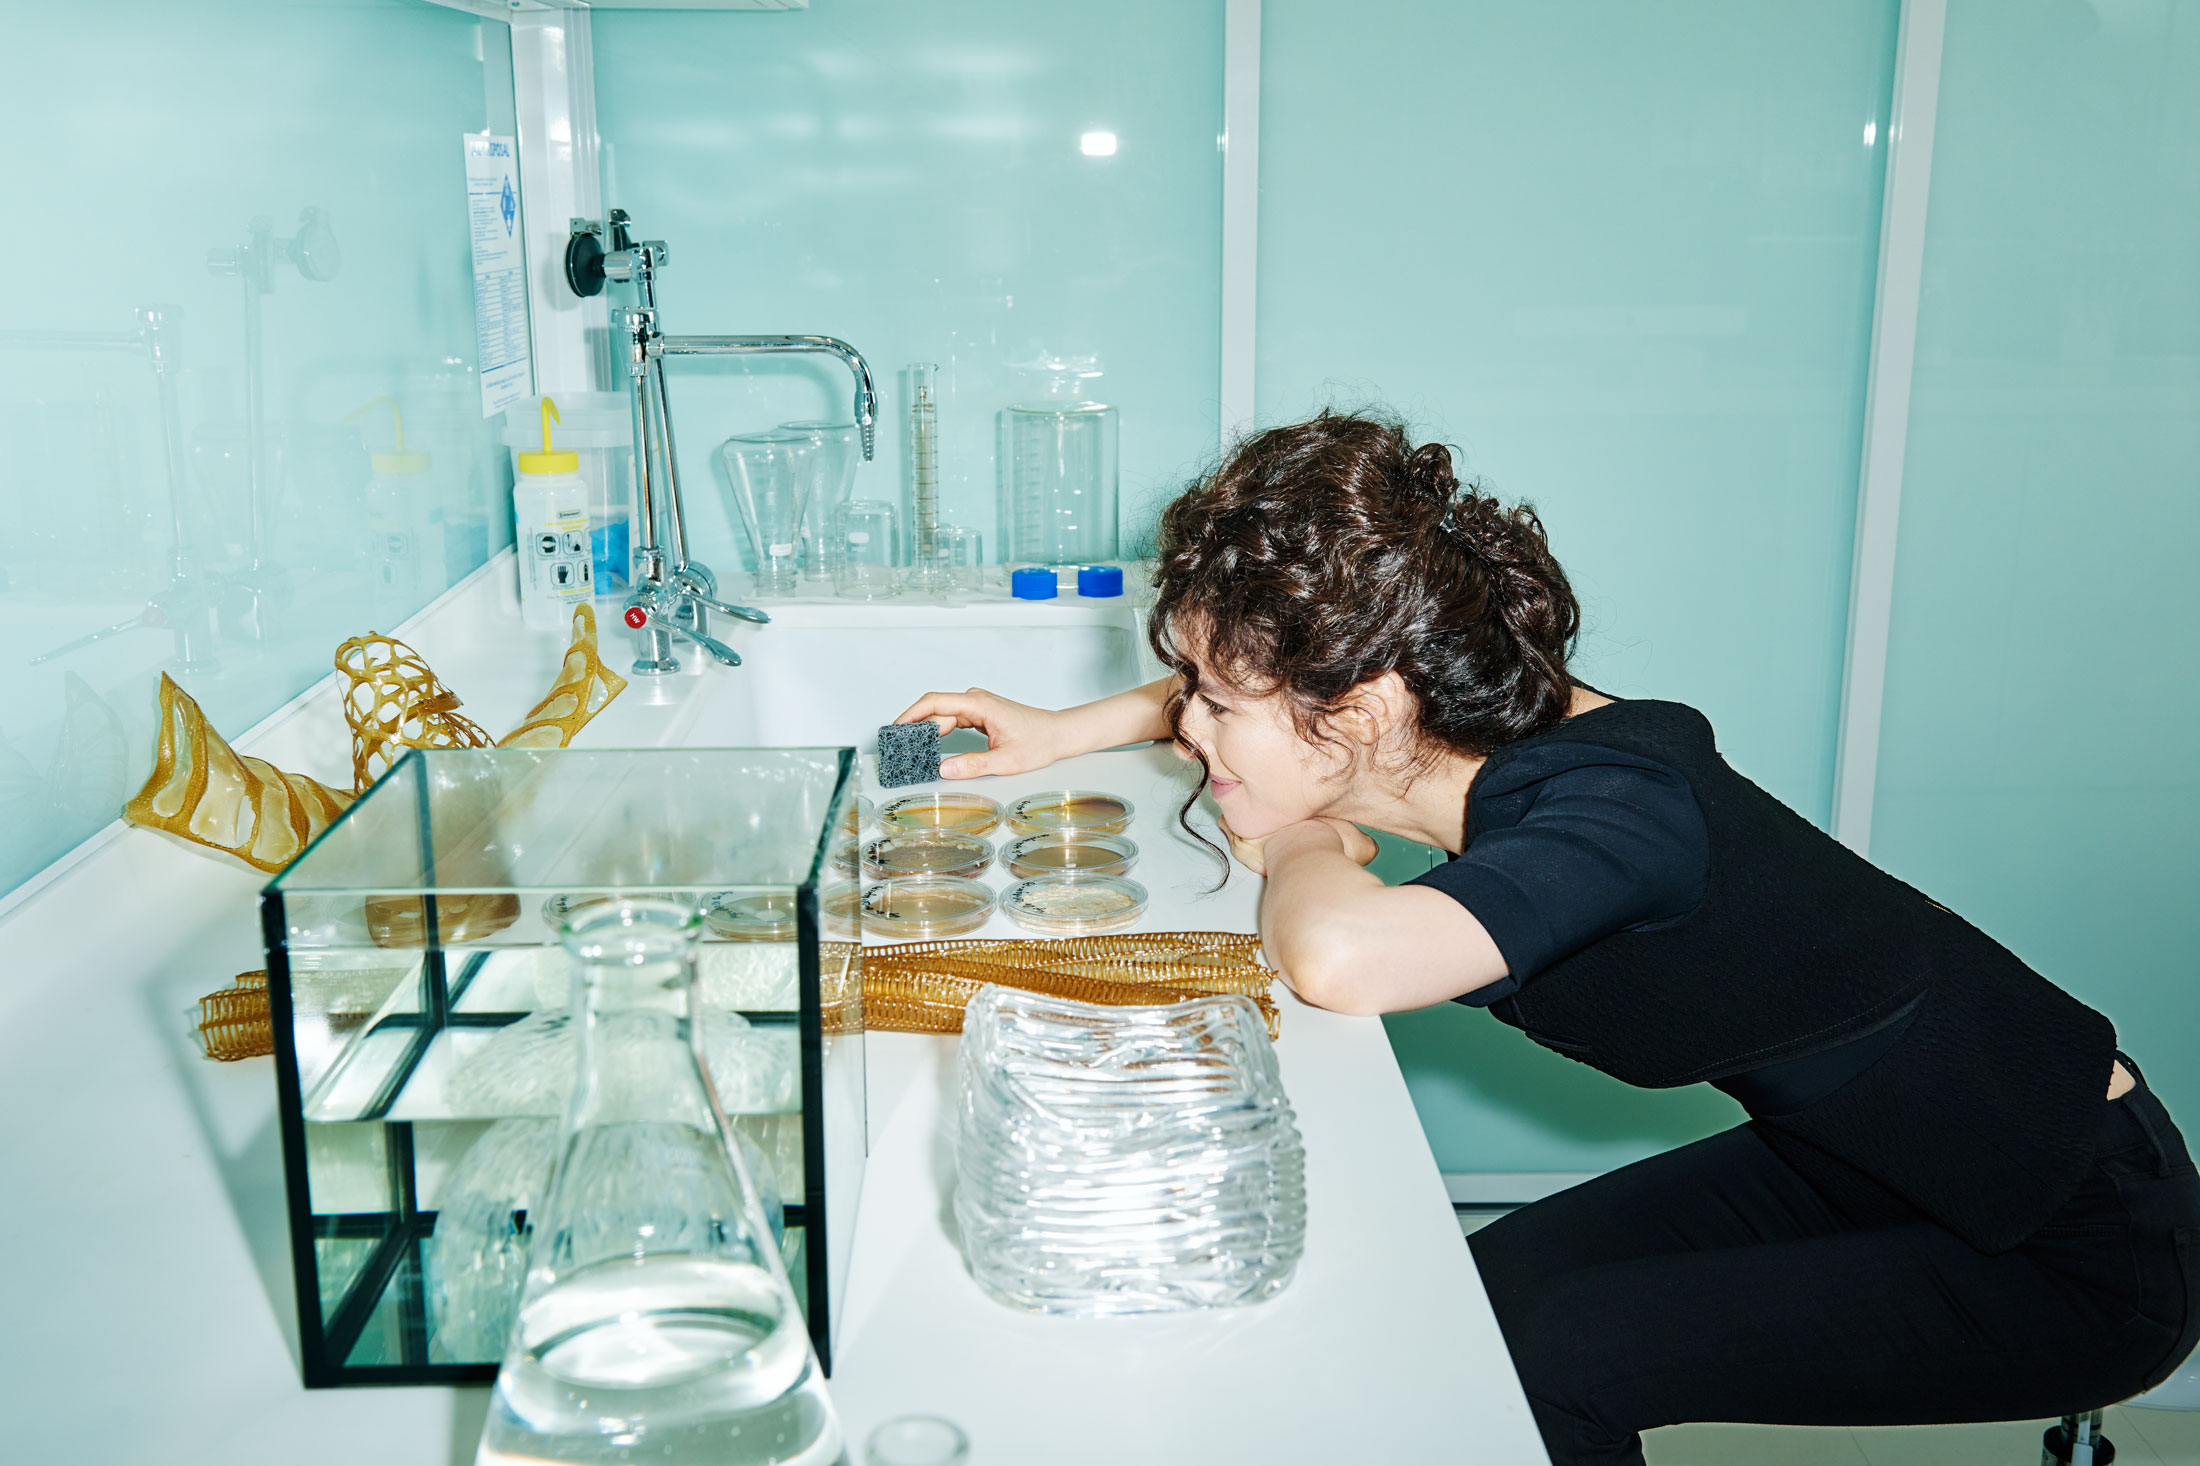 Oxman at work in the lab. (Photo: Tony Luong/Surface)